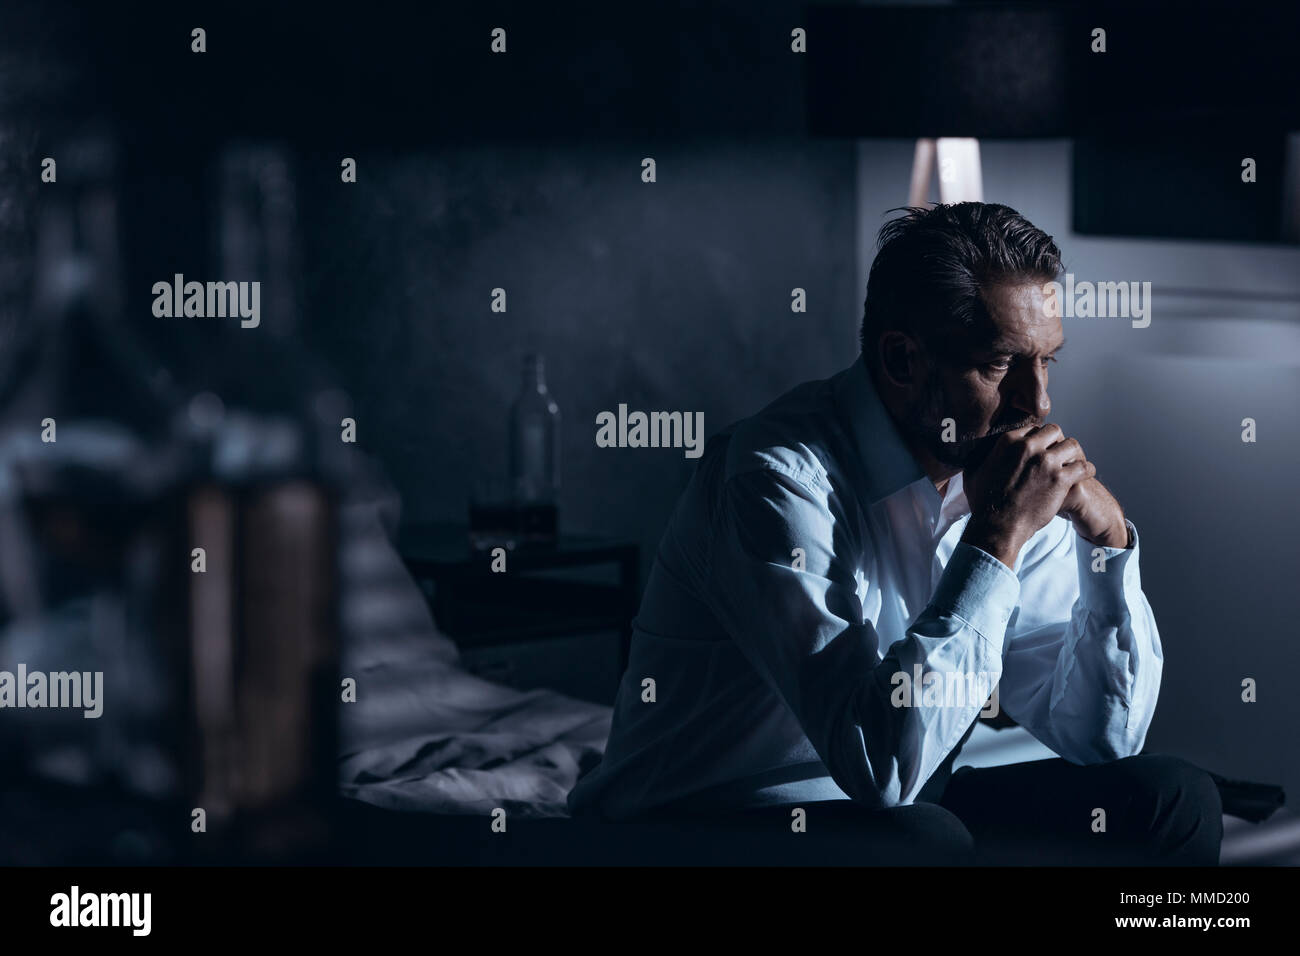 Portrait of a lonely mature man with depression sitting on a bed in a gray room with bottles of alcohol standing around - Stock Image